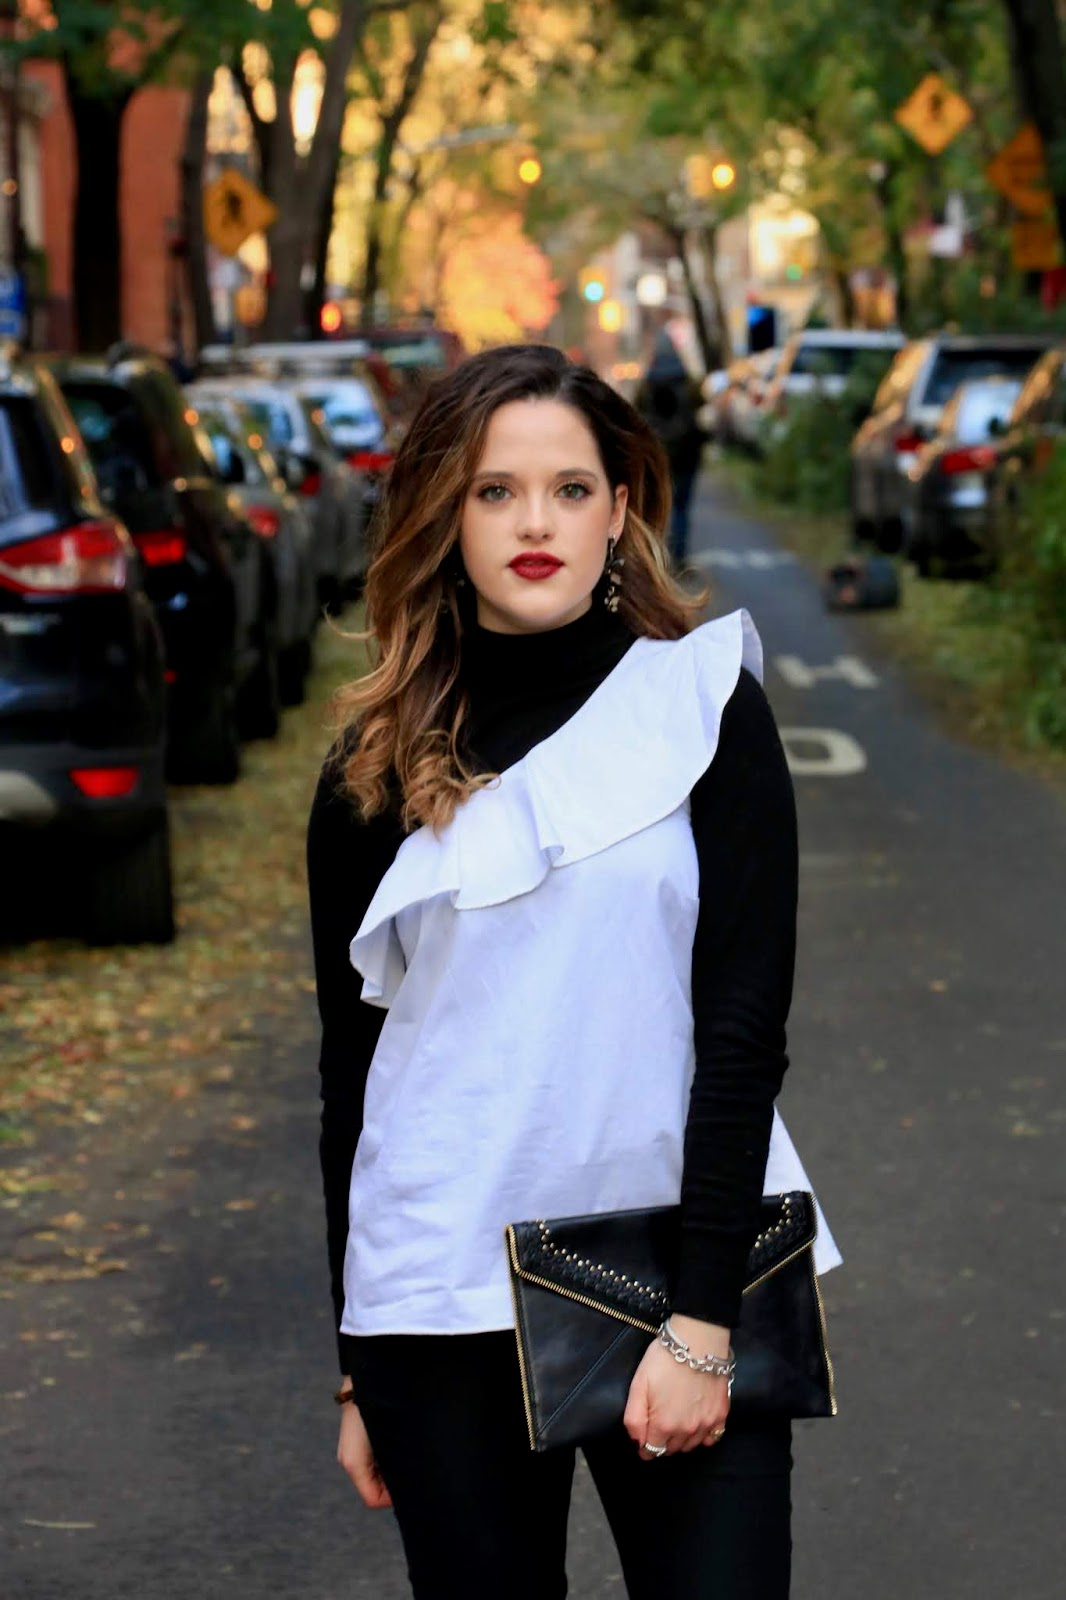 Nyc fashion blogger Kathleen Harper wearing a turtleneck layered under a blouse